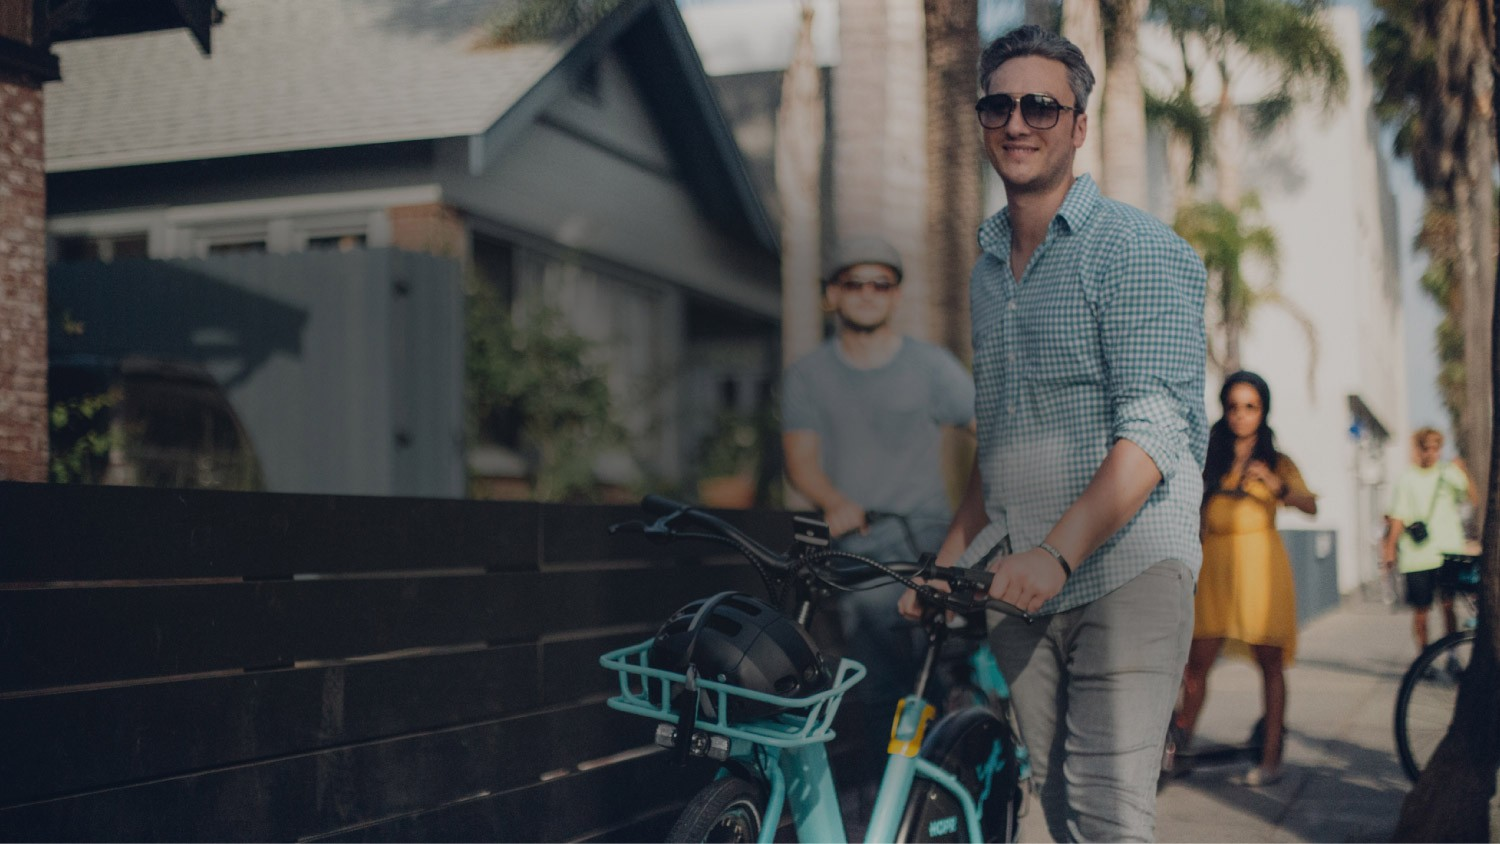 Have you ever wanted to run your own bike or scooter share? HOPR is a one-stop shop for shared-use mobility, so you can get in the game for less.